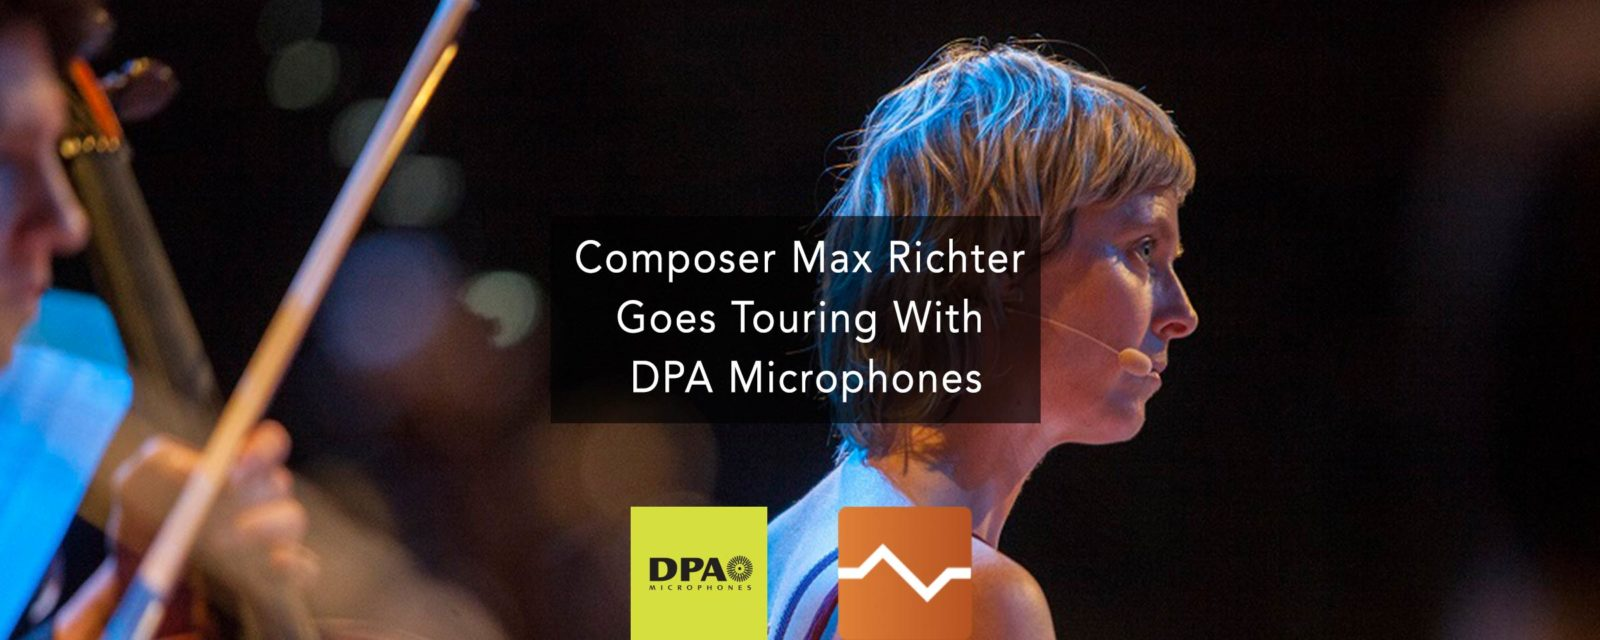 Composer-Max-Richter-Goes-Touring-With-DPA-Microphones